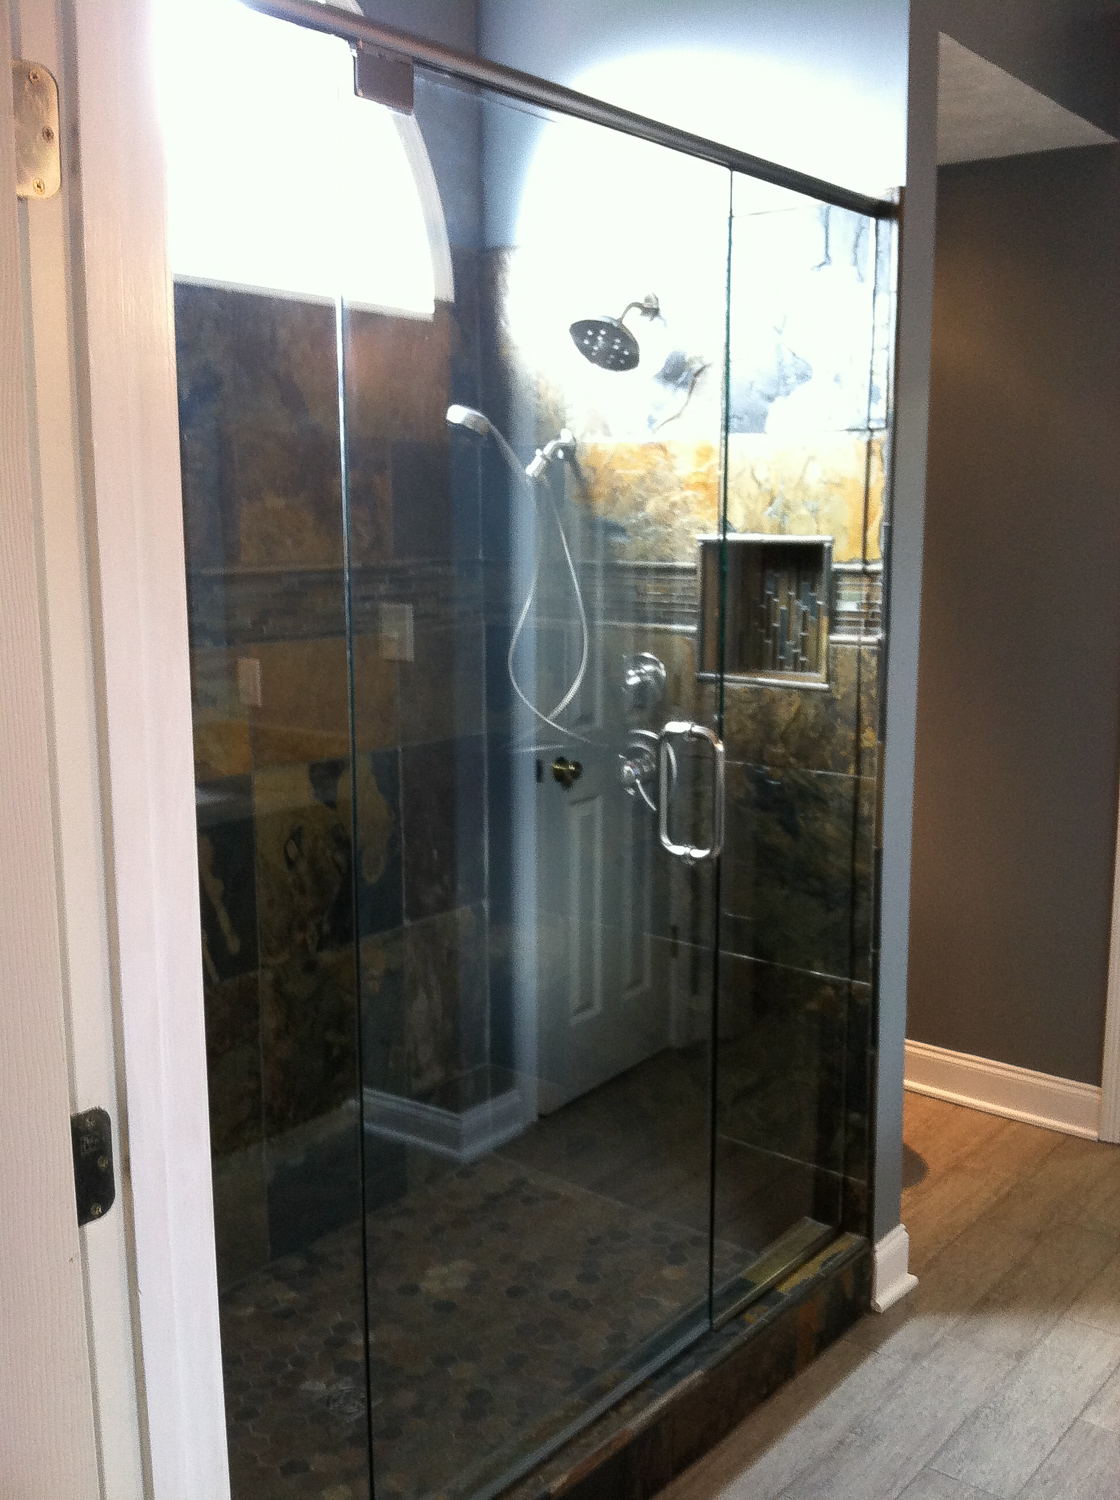 knoxville-tn-glass-replacement-windows-5.jpg